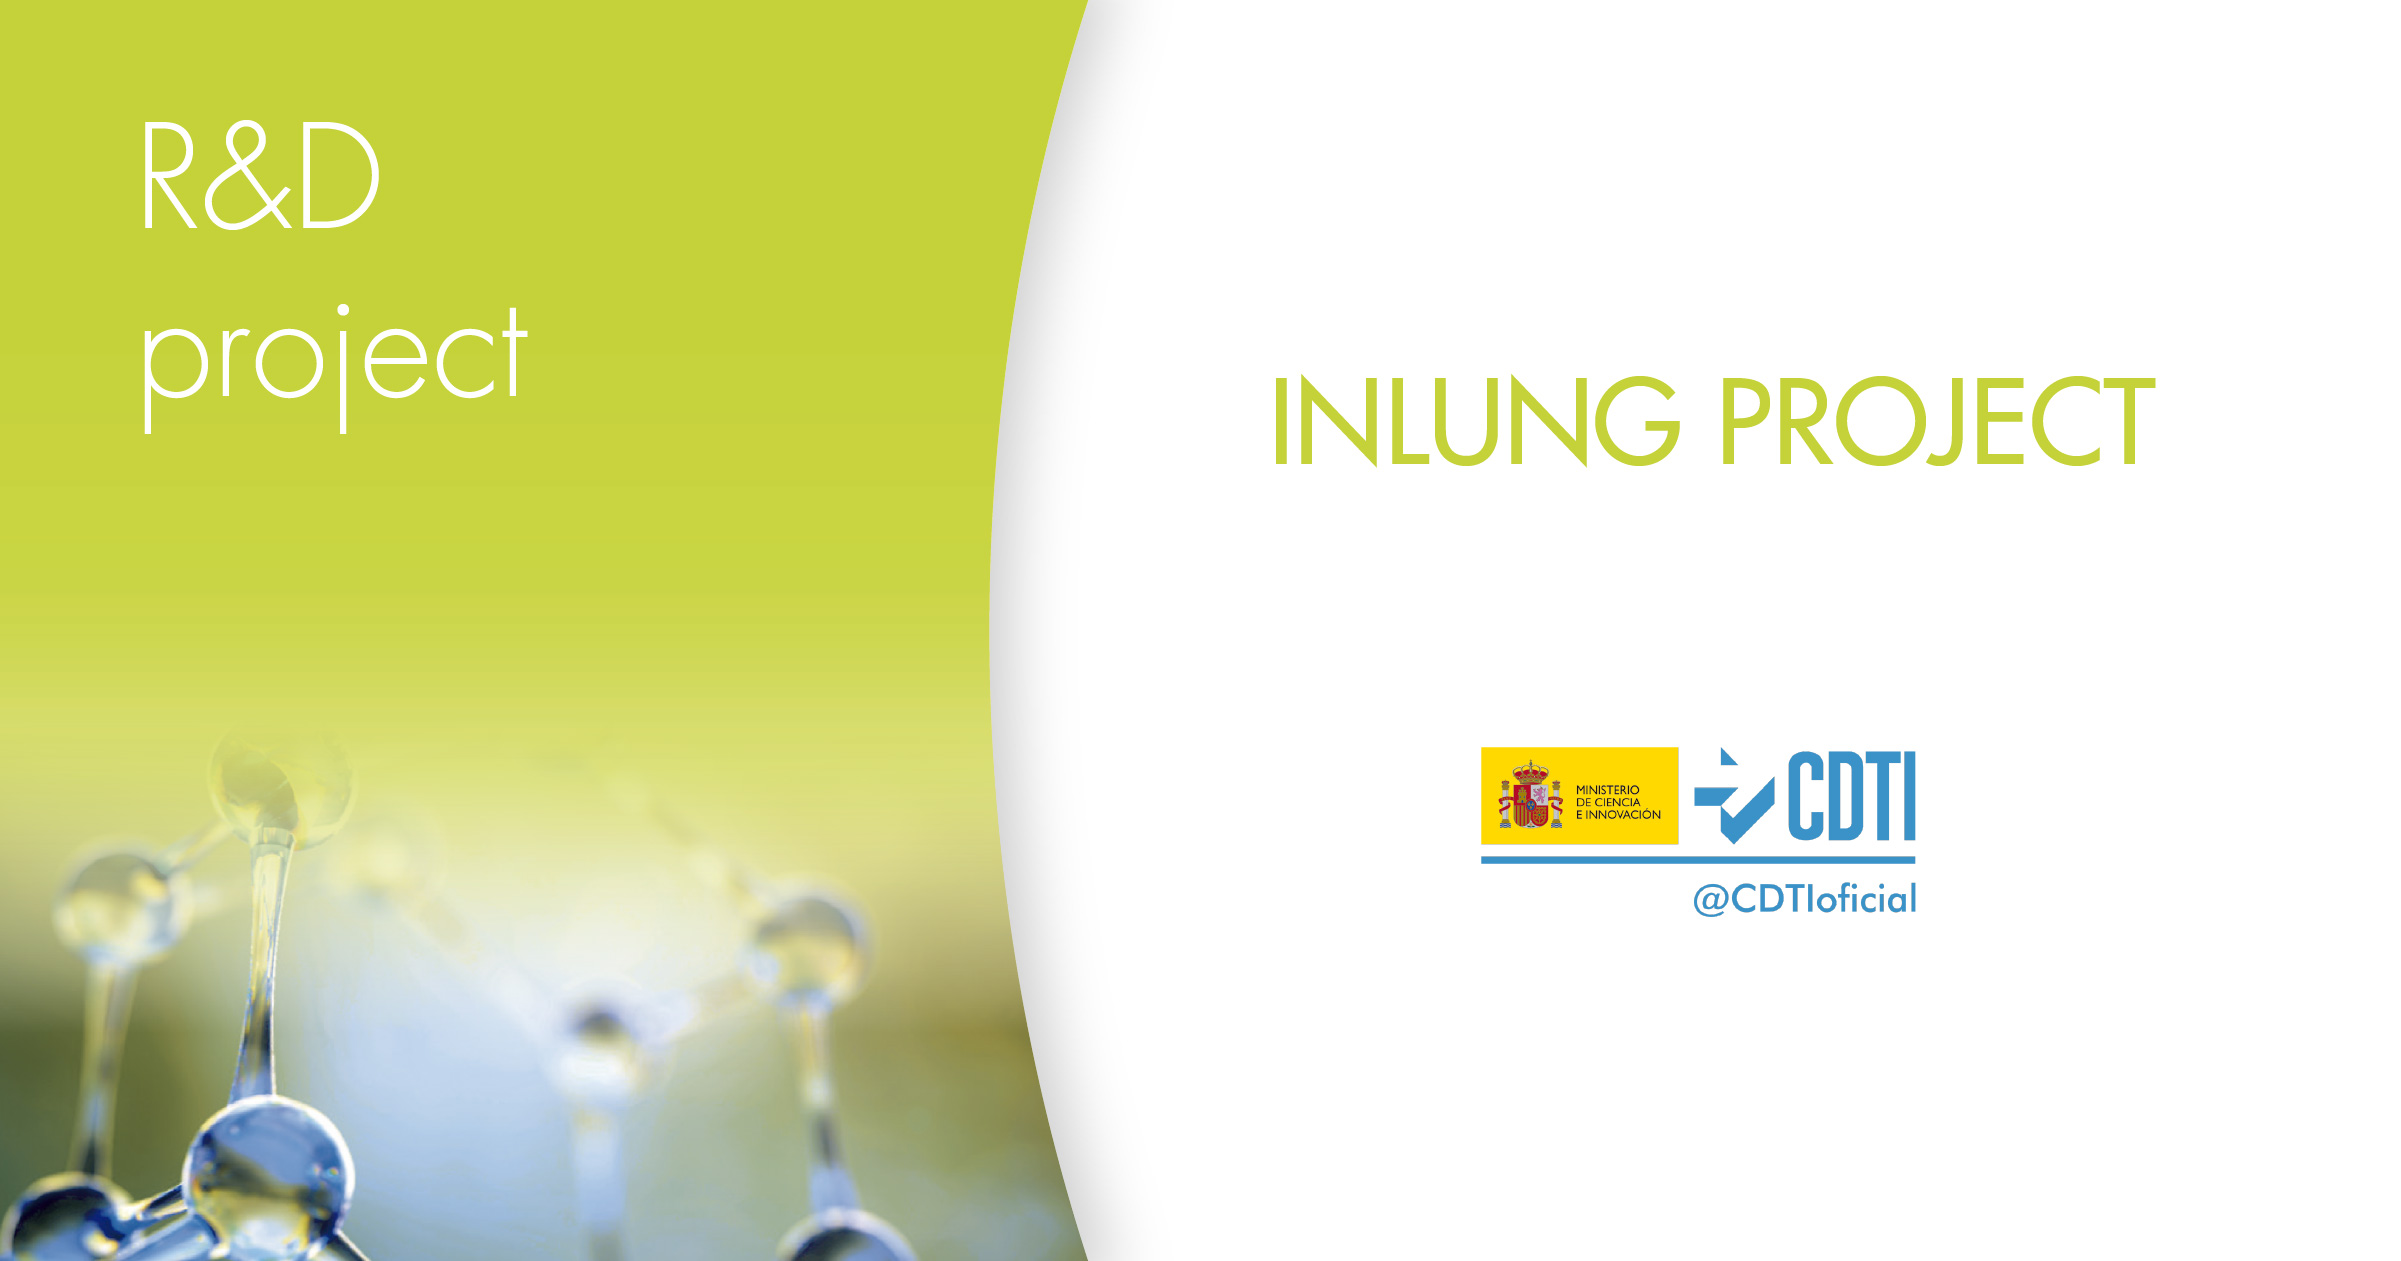 INLUNG project